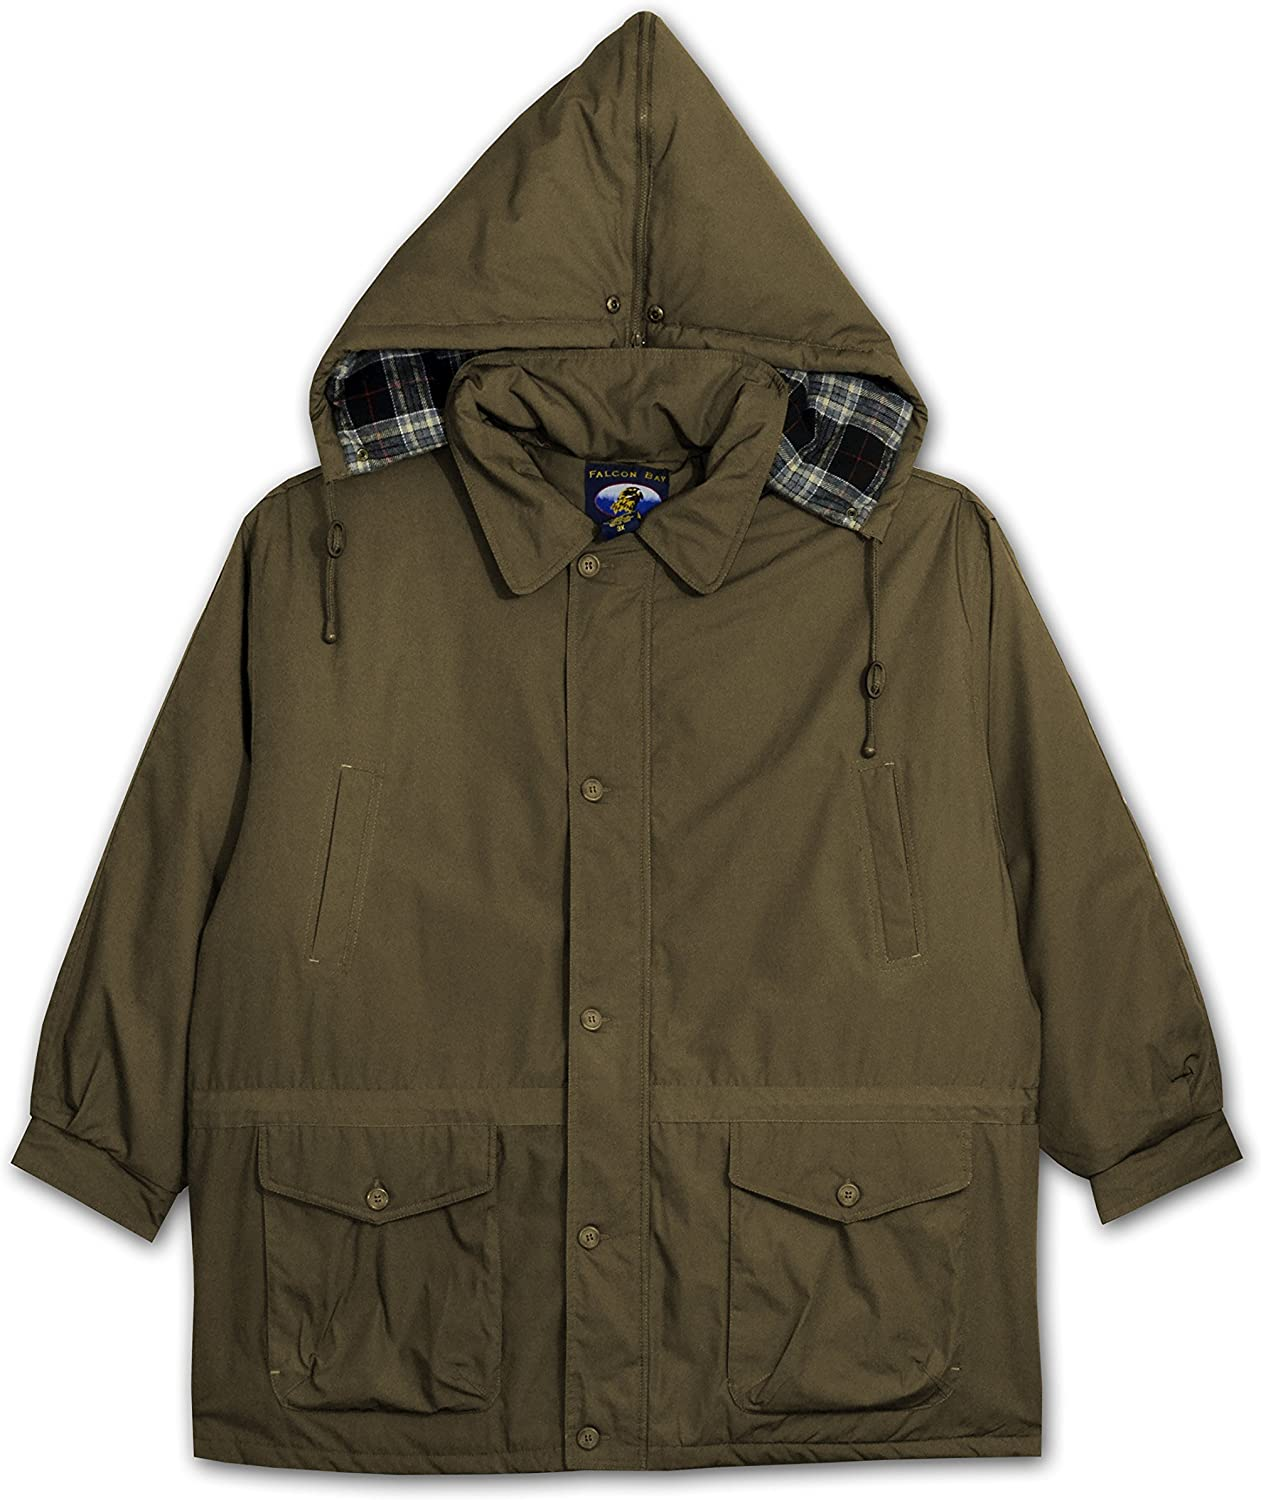 Falcon Bay Big and Tall Mens Insulated Parka